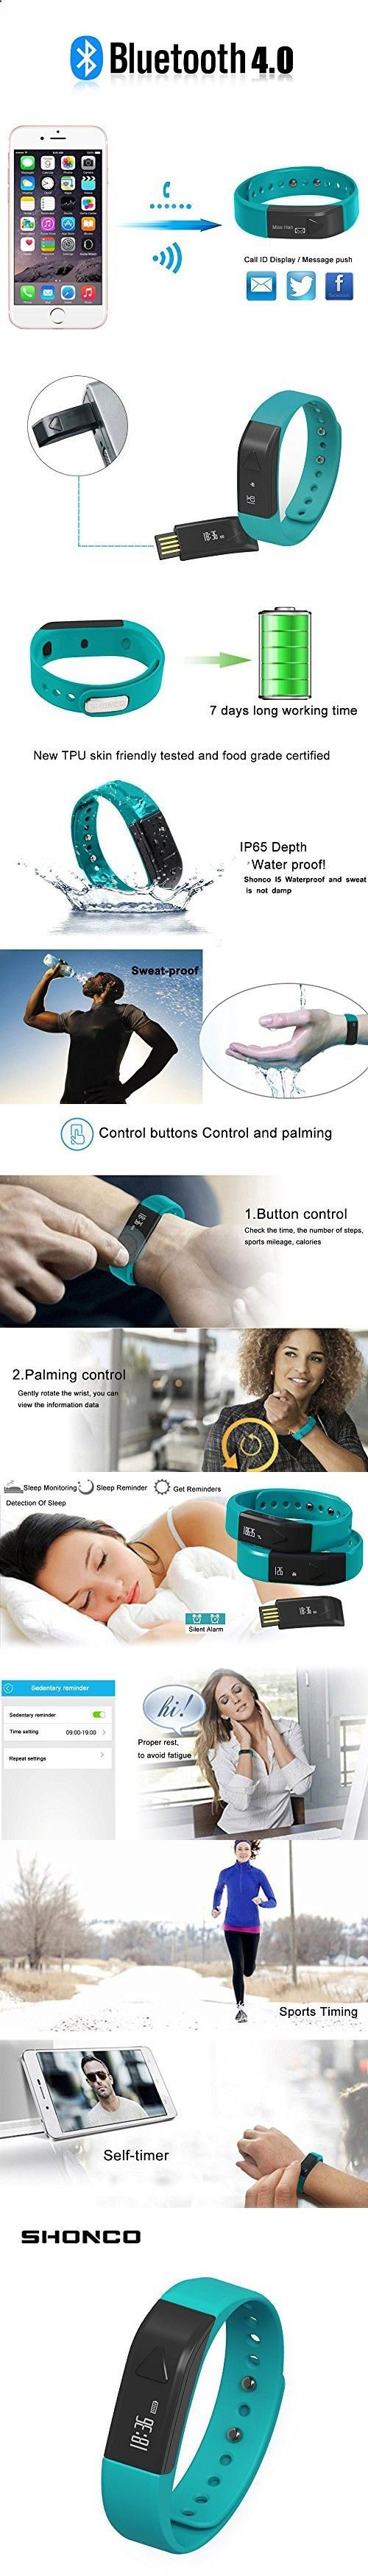 Activity Bracelets Fitness - Fitness Tracker Bracelet,Shonco I5 Waterproof Bluetooth Activity Tracker Smart Band Wristband with Sports Pedometer Health Sleep Monitor Calories Burned Counter for iPhone Android Phones - Blue - The benefits of wearing these smart bracelets are not only in your comfort, but also in that they are able to control all your physical progress